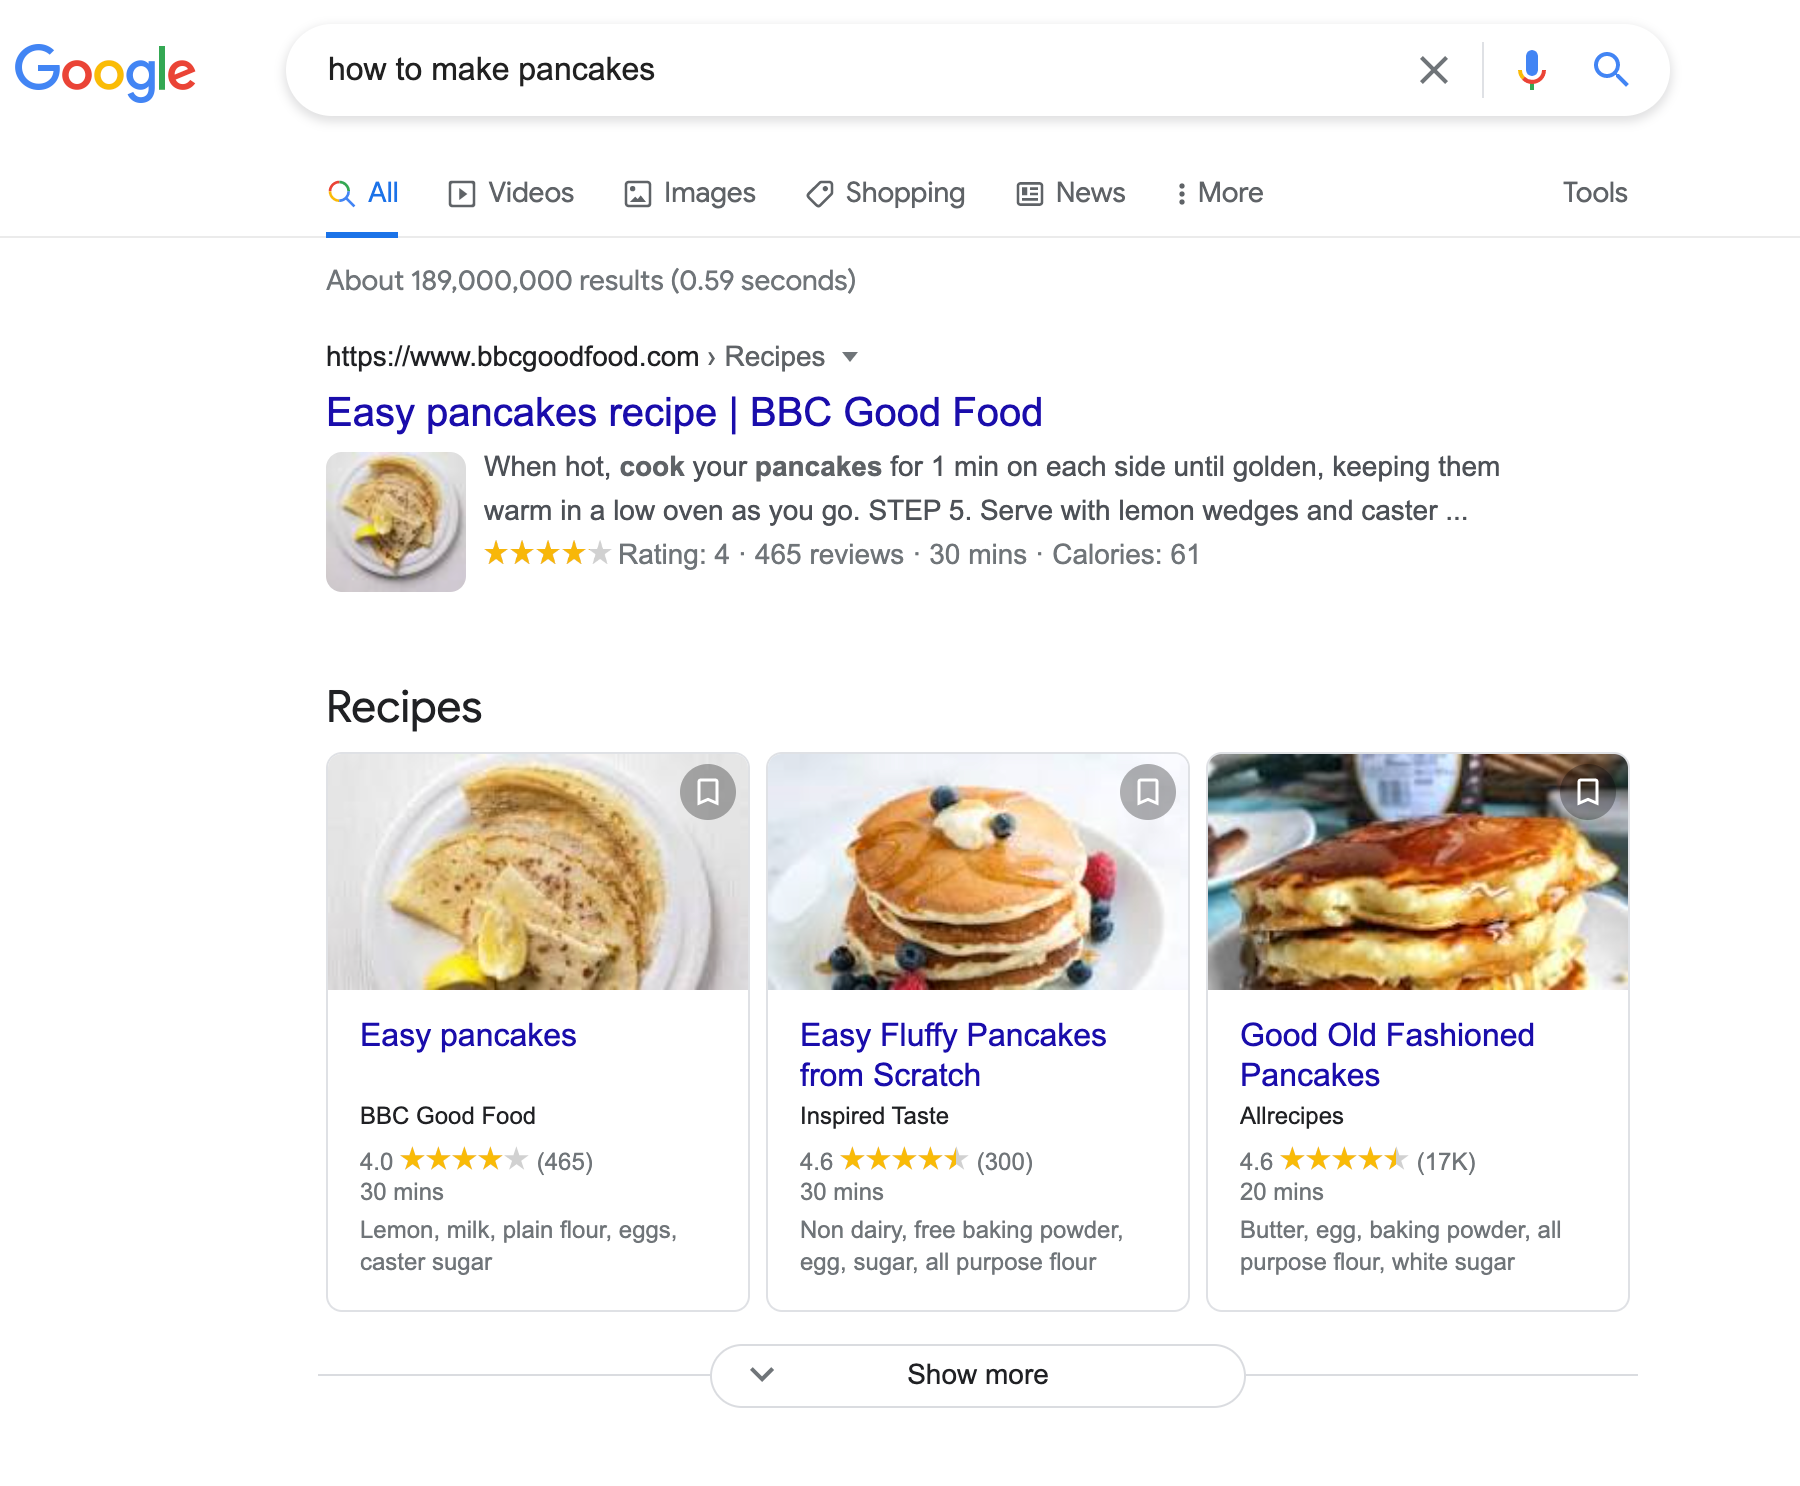 informational search intent example